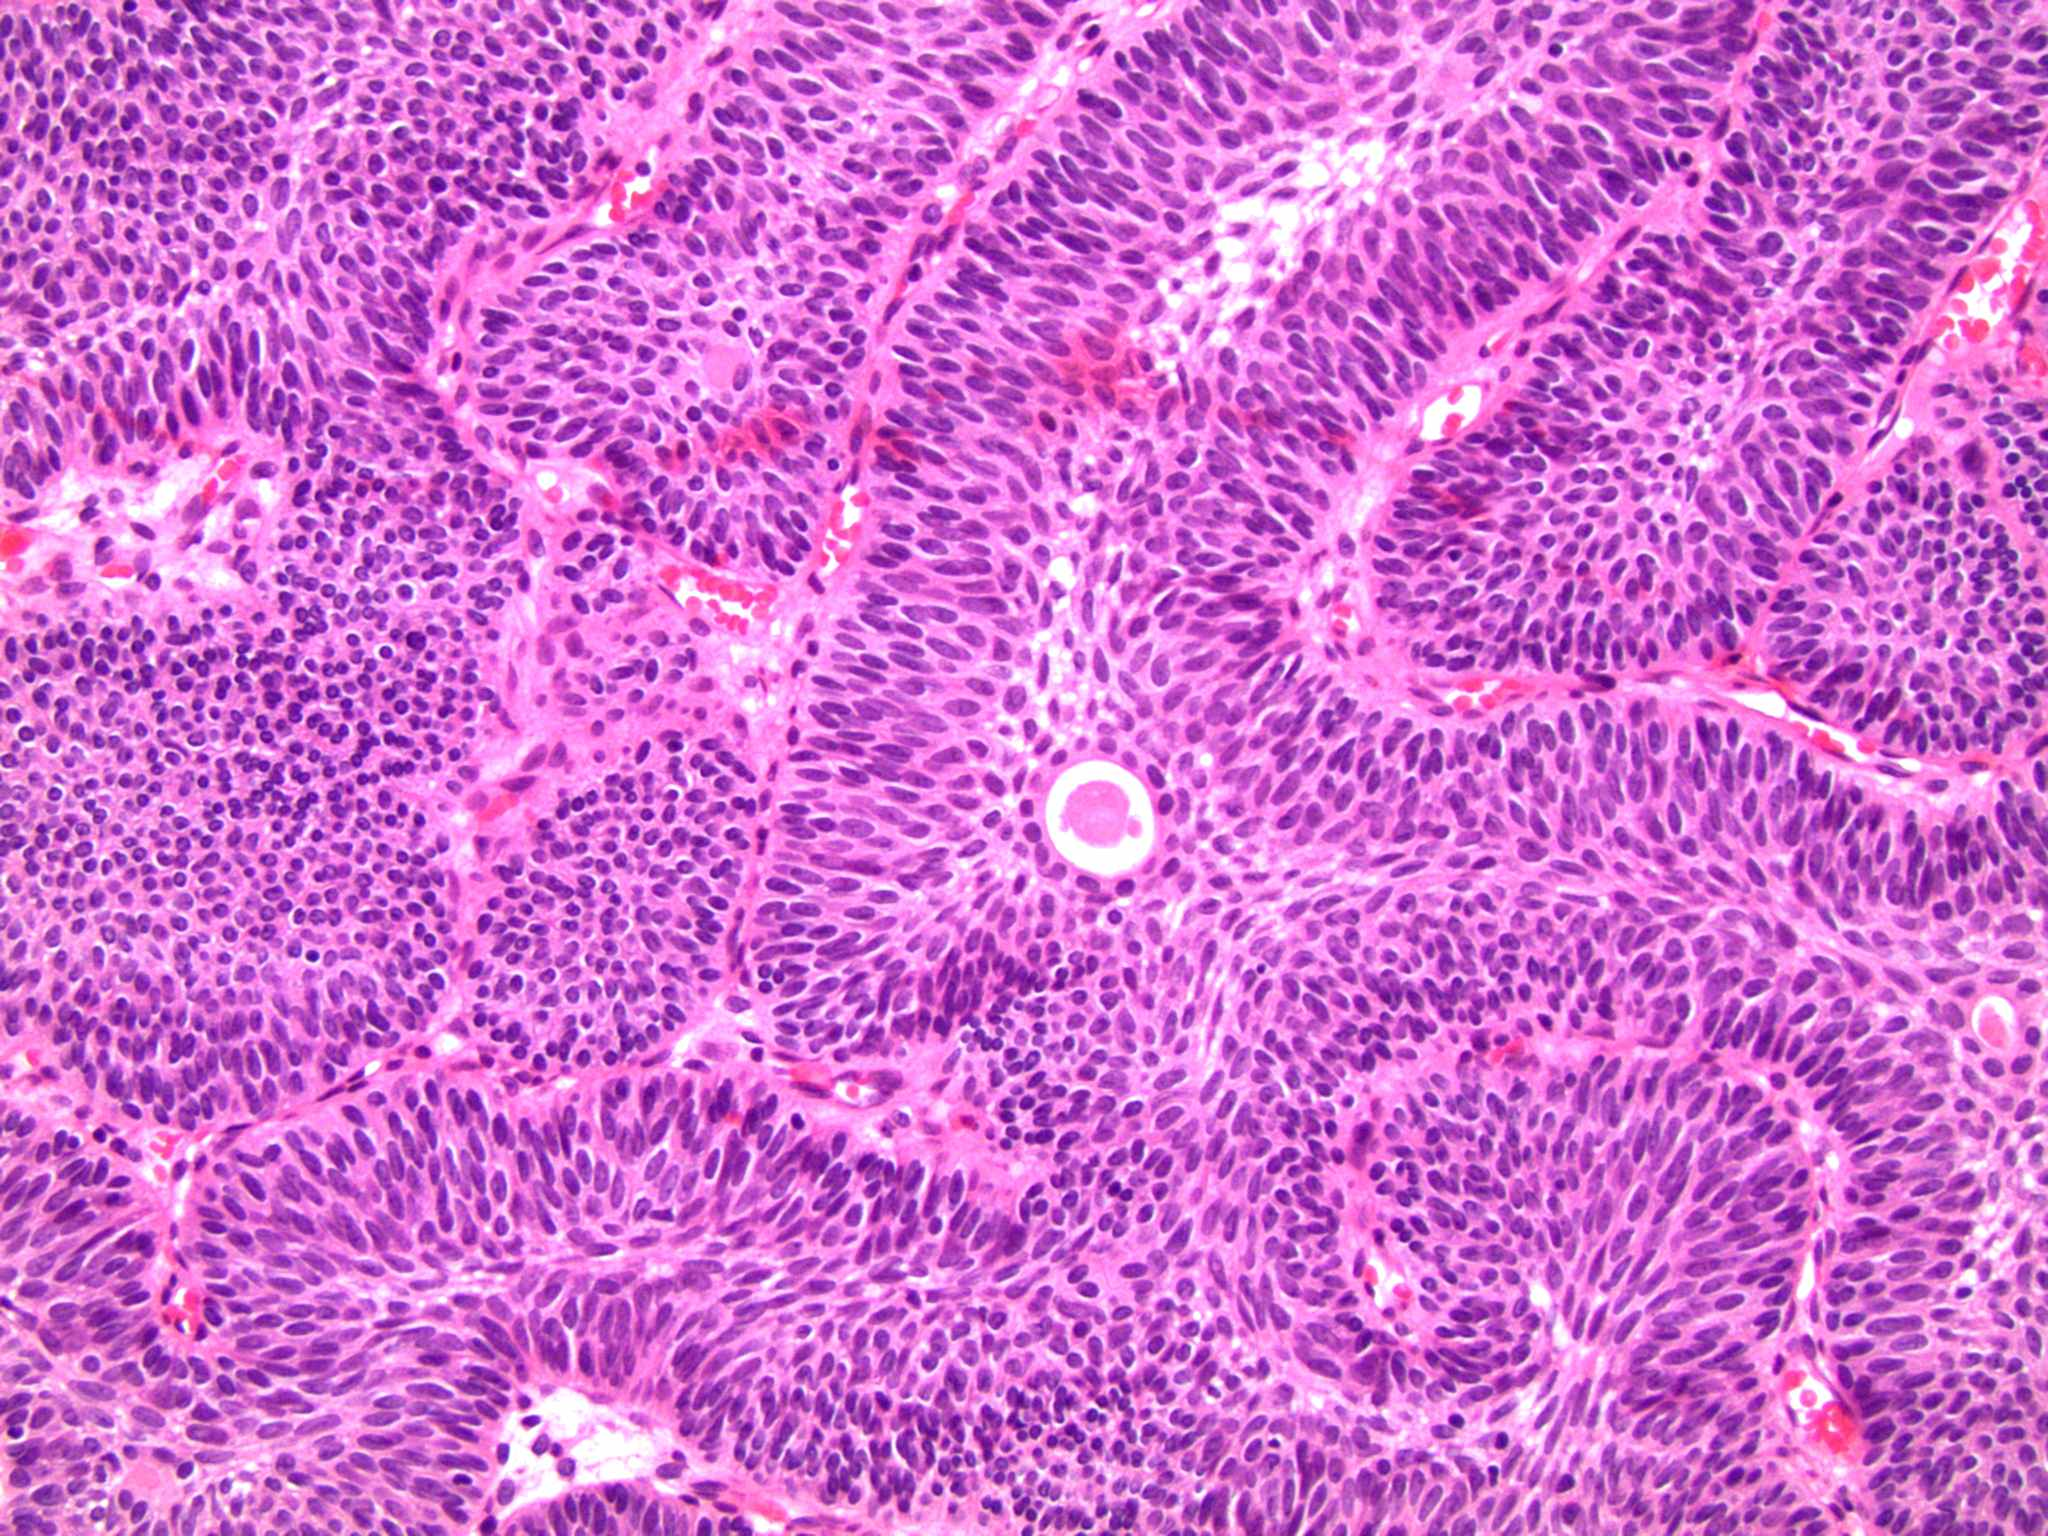 Inverted illoma bladder histology